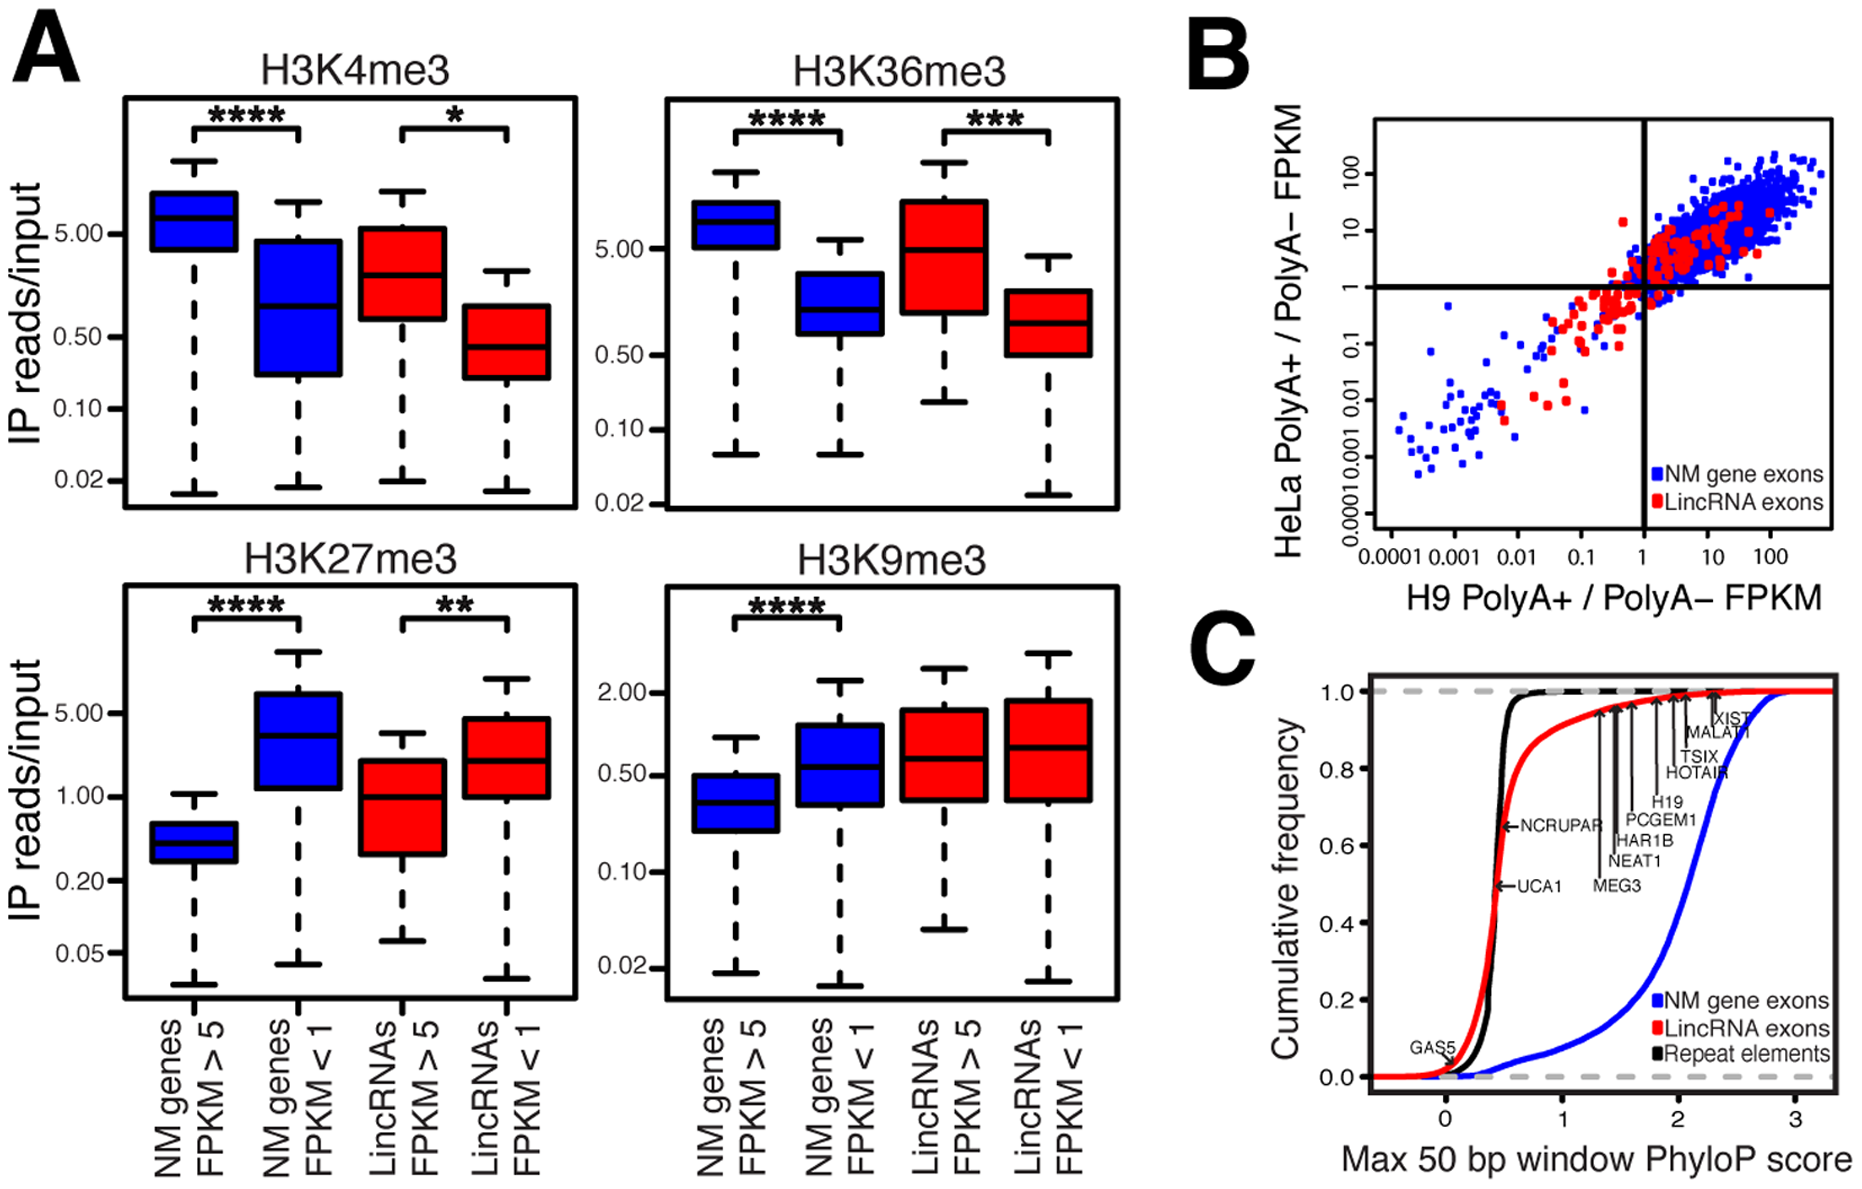 LincRNAs possess features inconsistent with transcriptional noise.